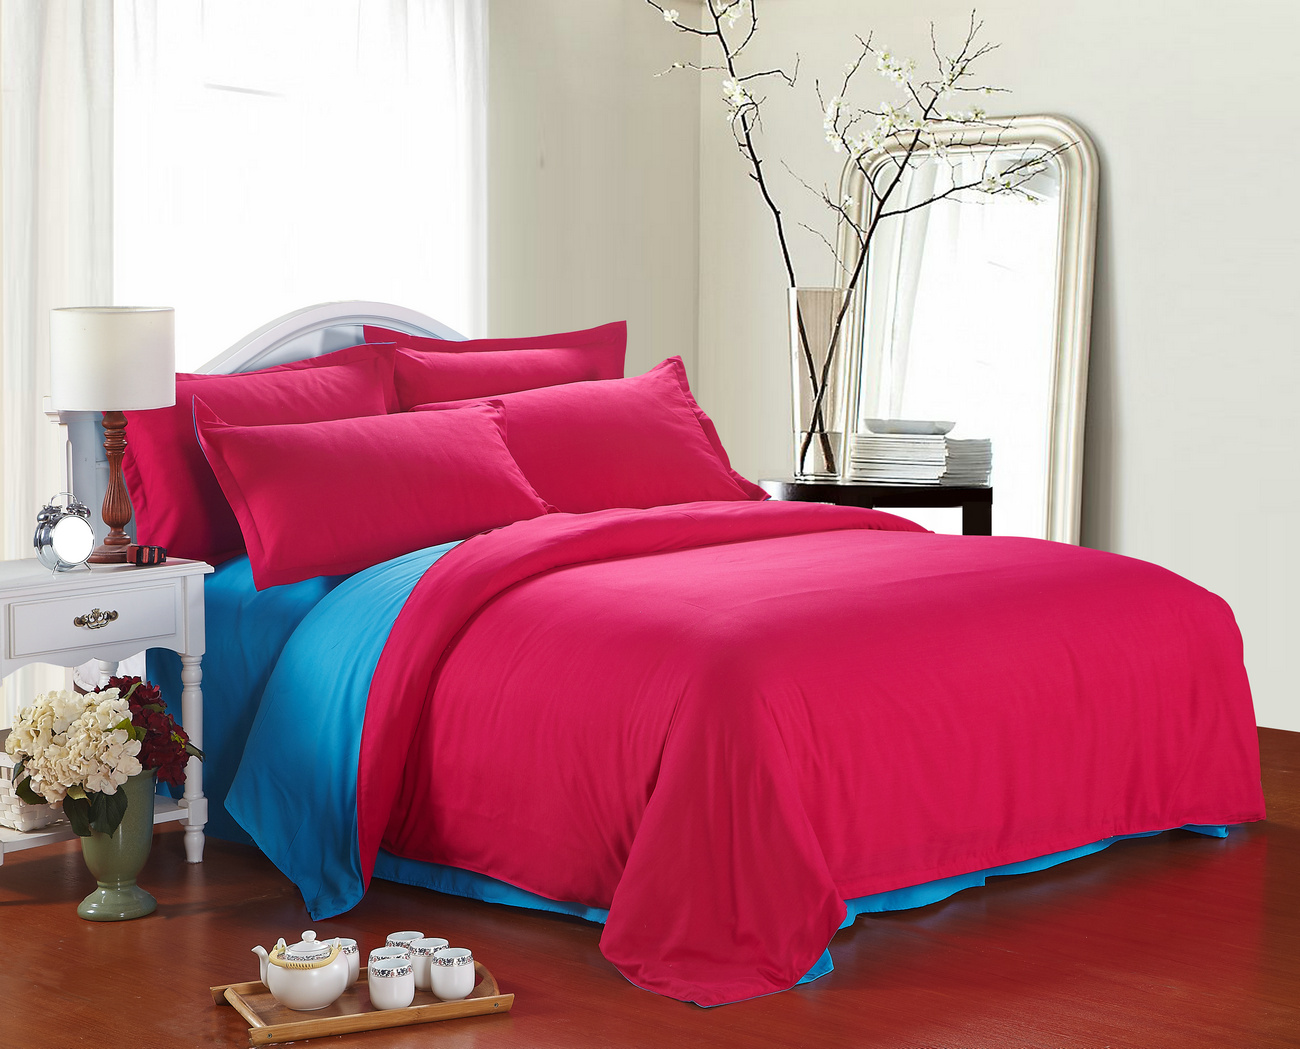 Bed sheet set with quilt - Aliexpress Com Buy Bed Linen Solid Color Double Simple Plain Cotton Set Quilt Cover Three Dormitories Single Sheets Set From Reliable Sheet Sets Full Size